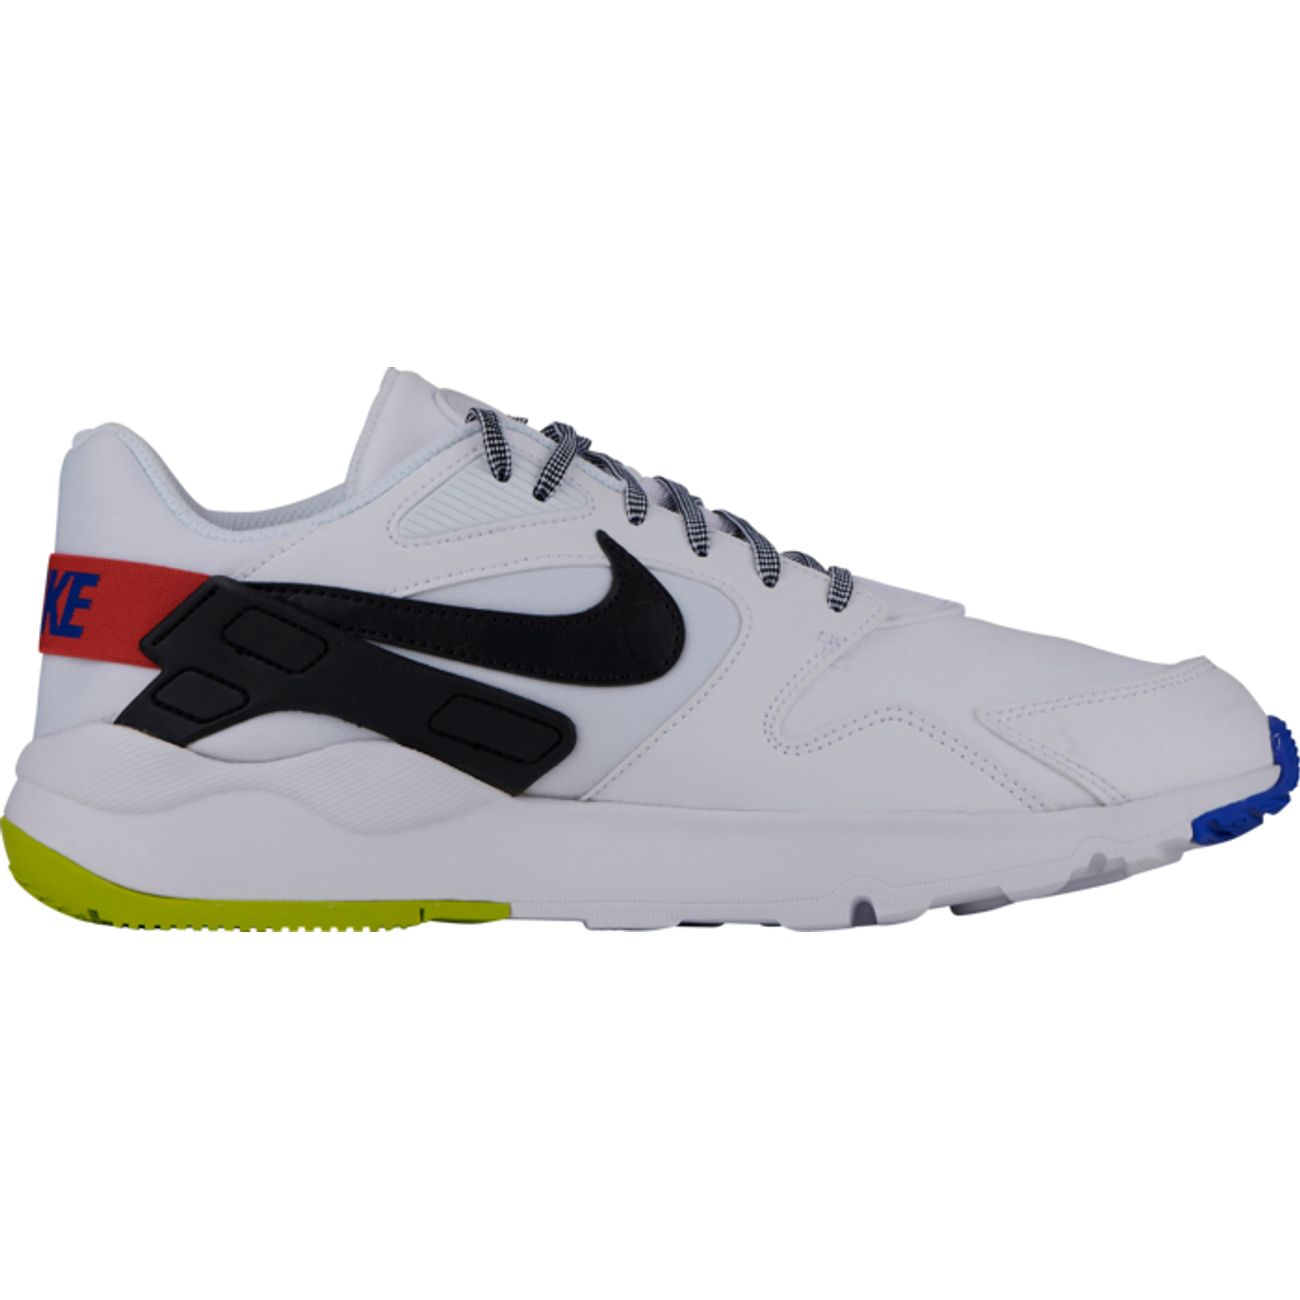 CHAUSSURES BASSES Loisirs homme NIKE LD VICTORY